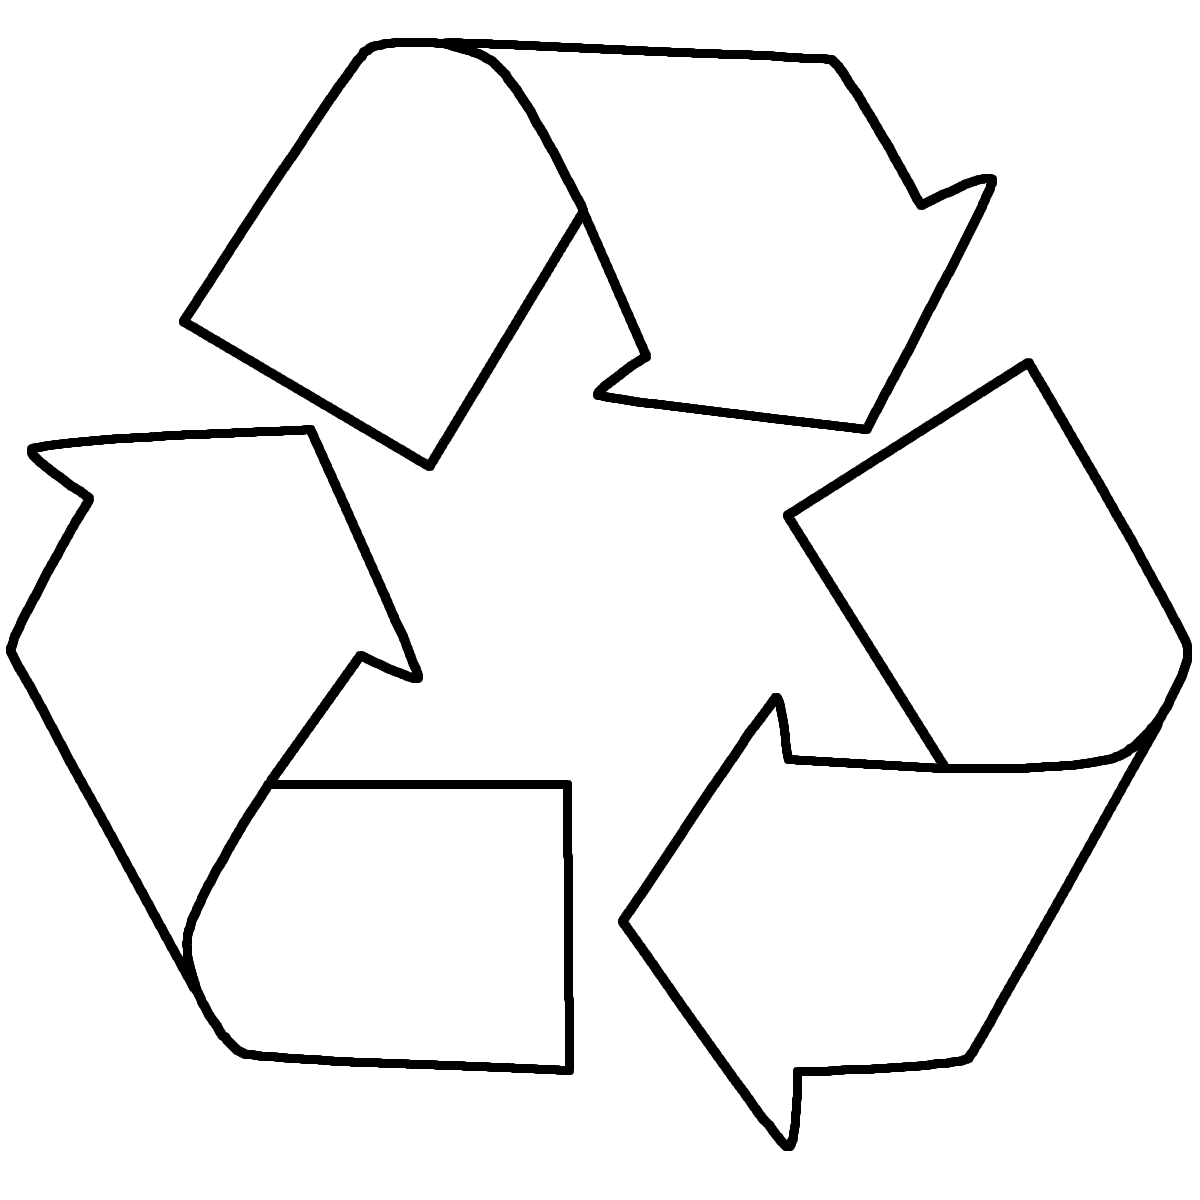 Reduce Reuse Recycle Coloring Page Gallery Clip Art Library